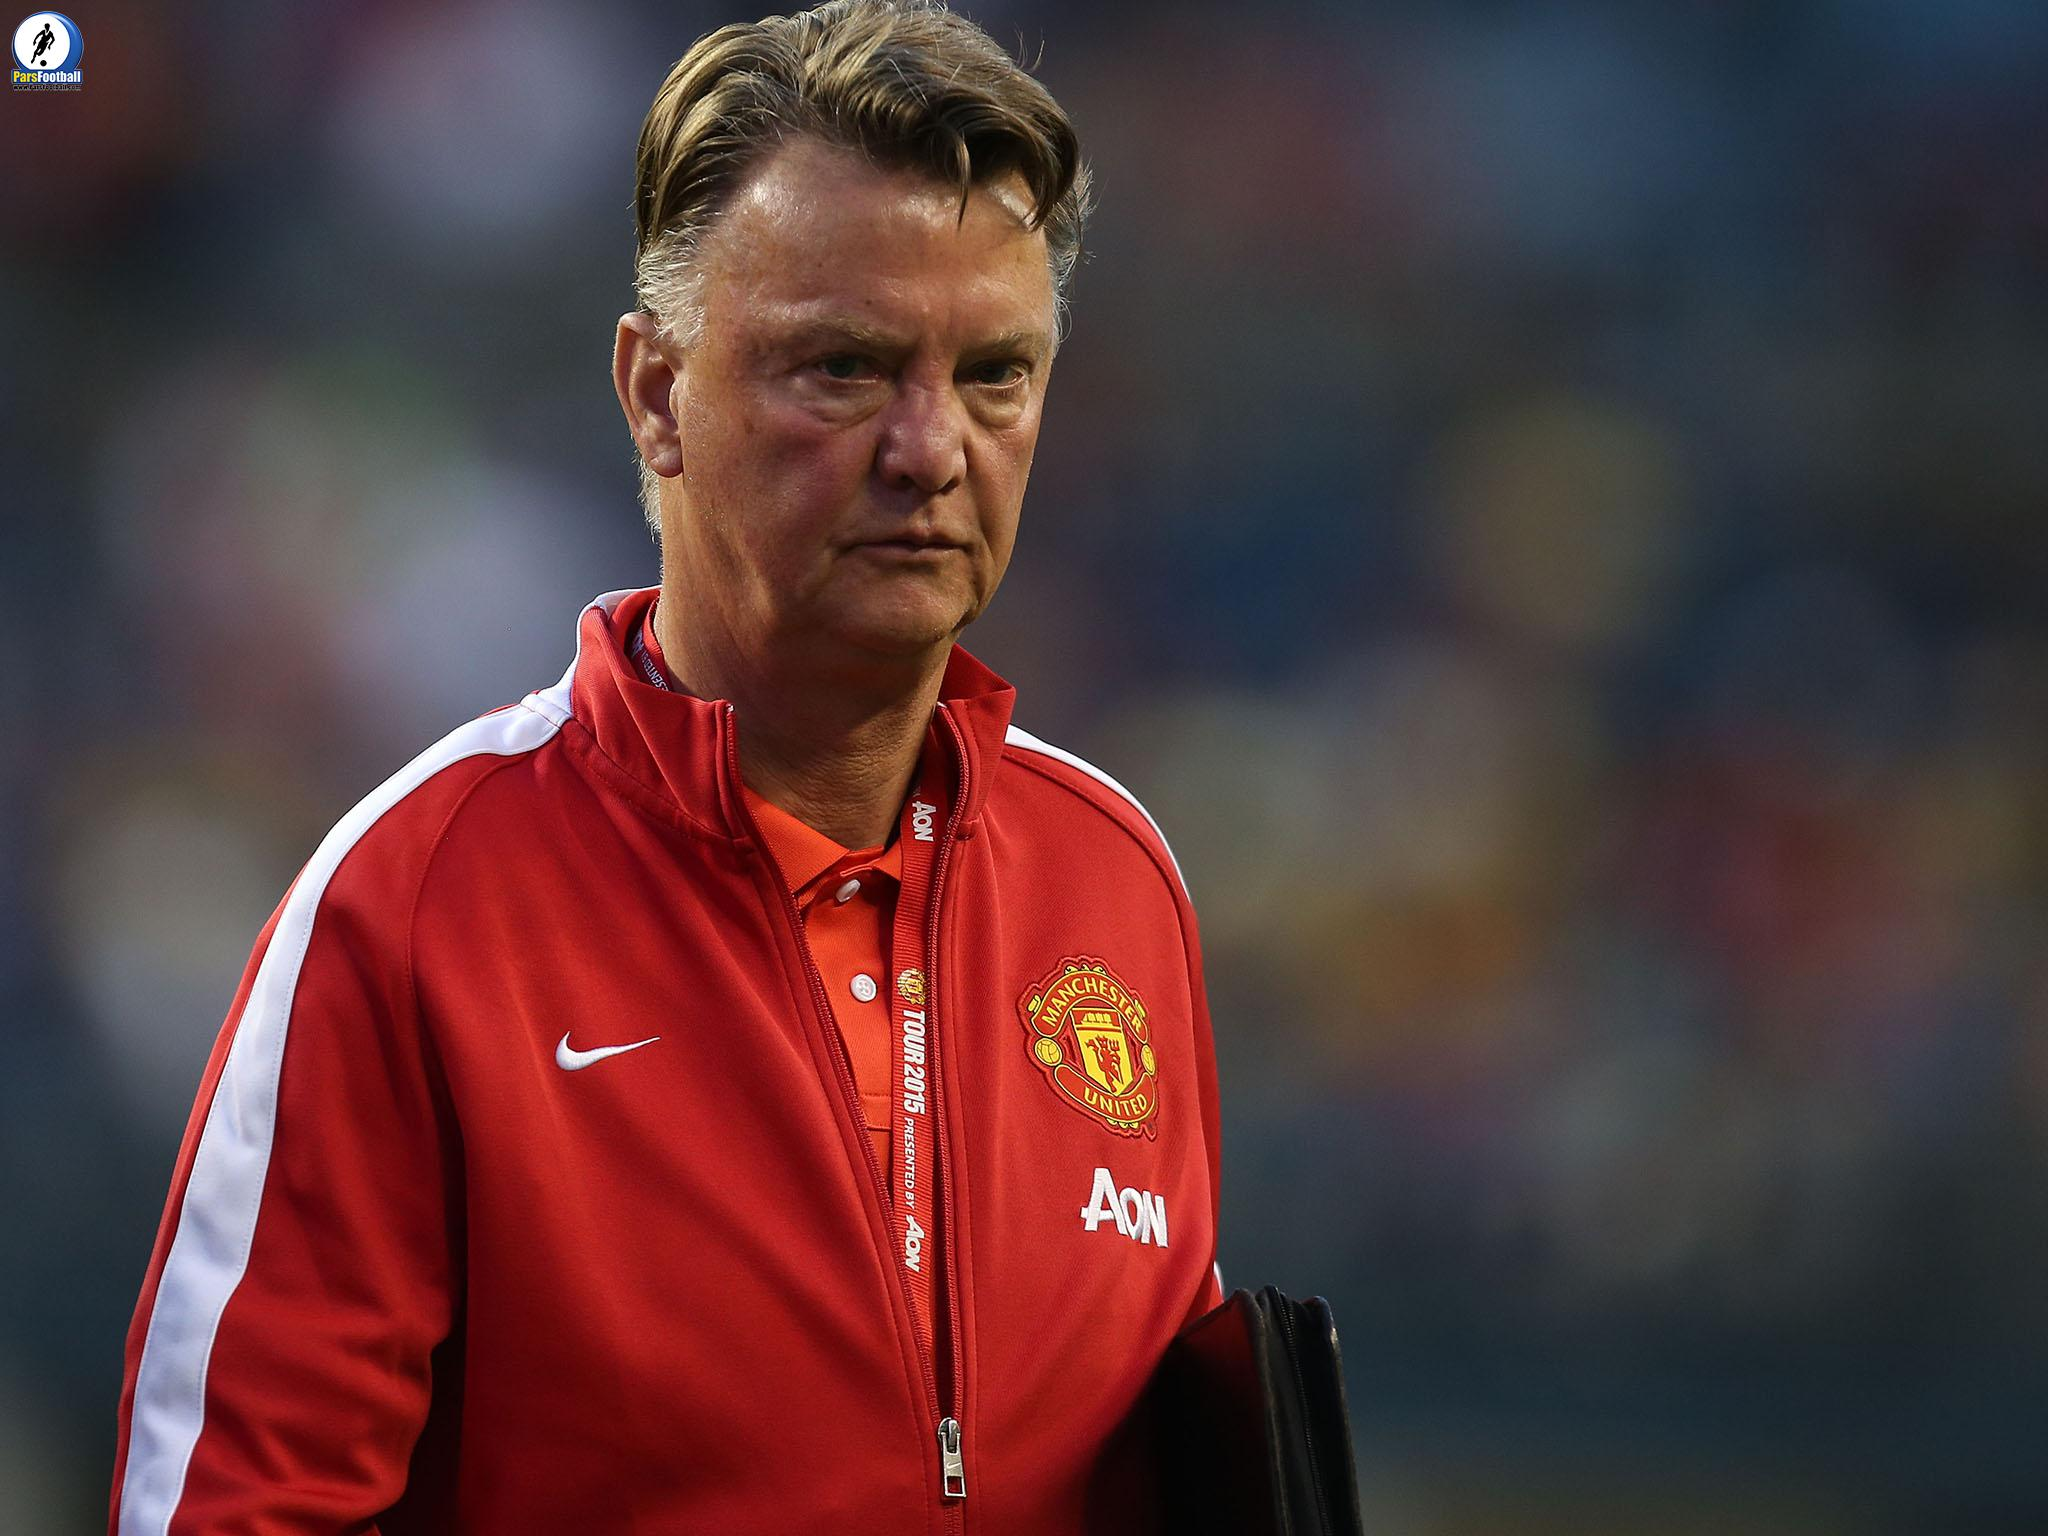 SEATTLE, WA - JULY 17:  Manager Louis van Gaal of Manchester United walks off after the International Champions Cup 2015 match between Manchester United and Club America at CenturyLink Field on July 17, 2015 in Seattle, Washington.  (Photo by Matthew Peters/Man Utd via Getty Images)